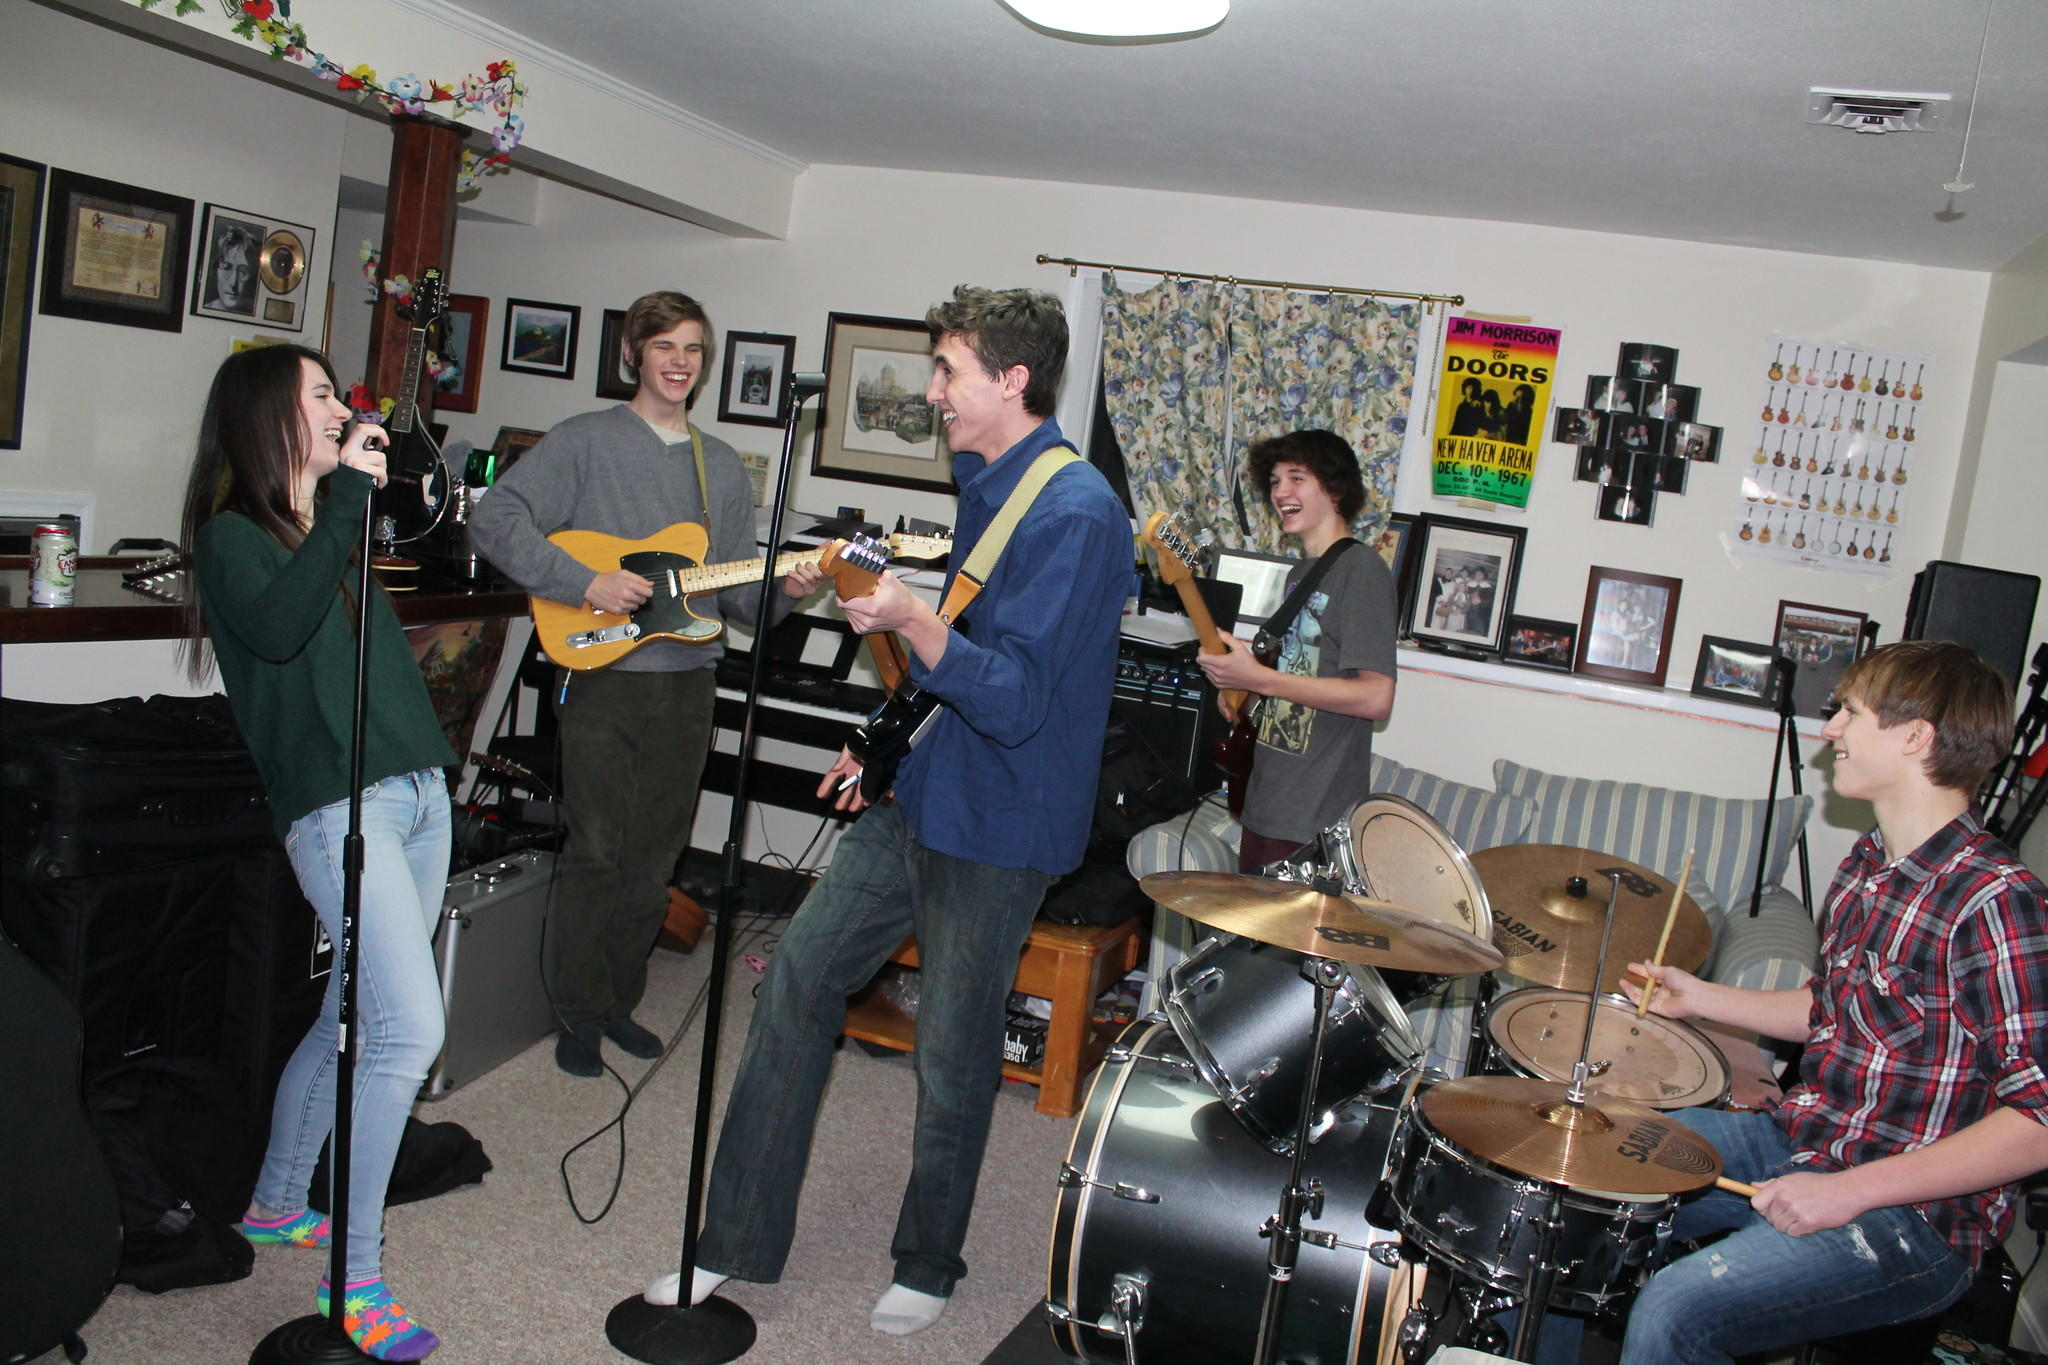 CRB, the band, practices in the basement of Corey Rieman's home.